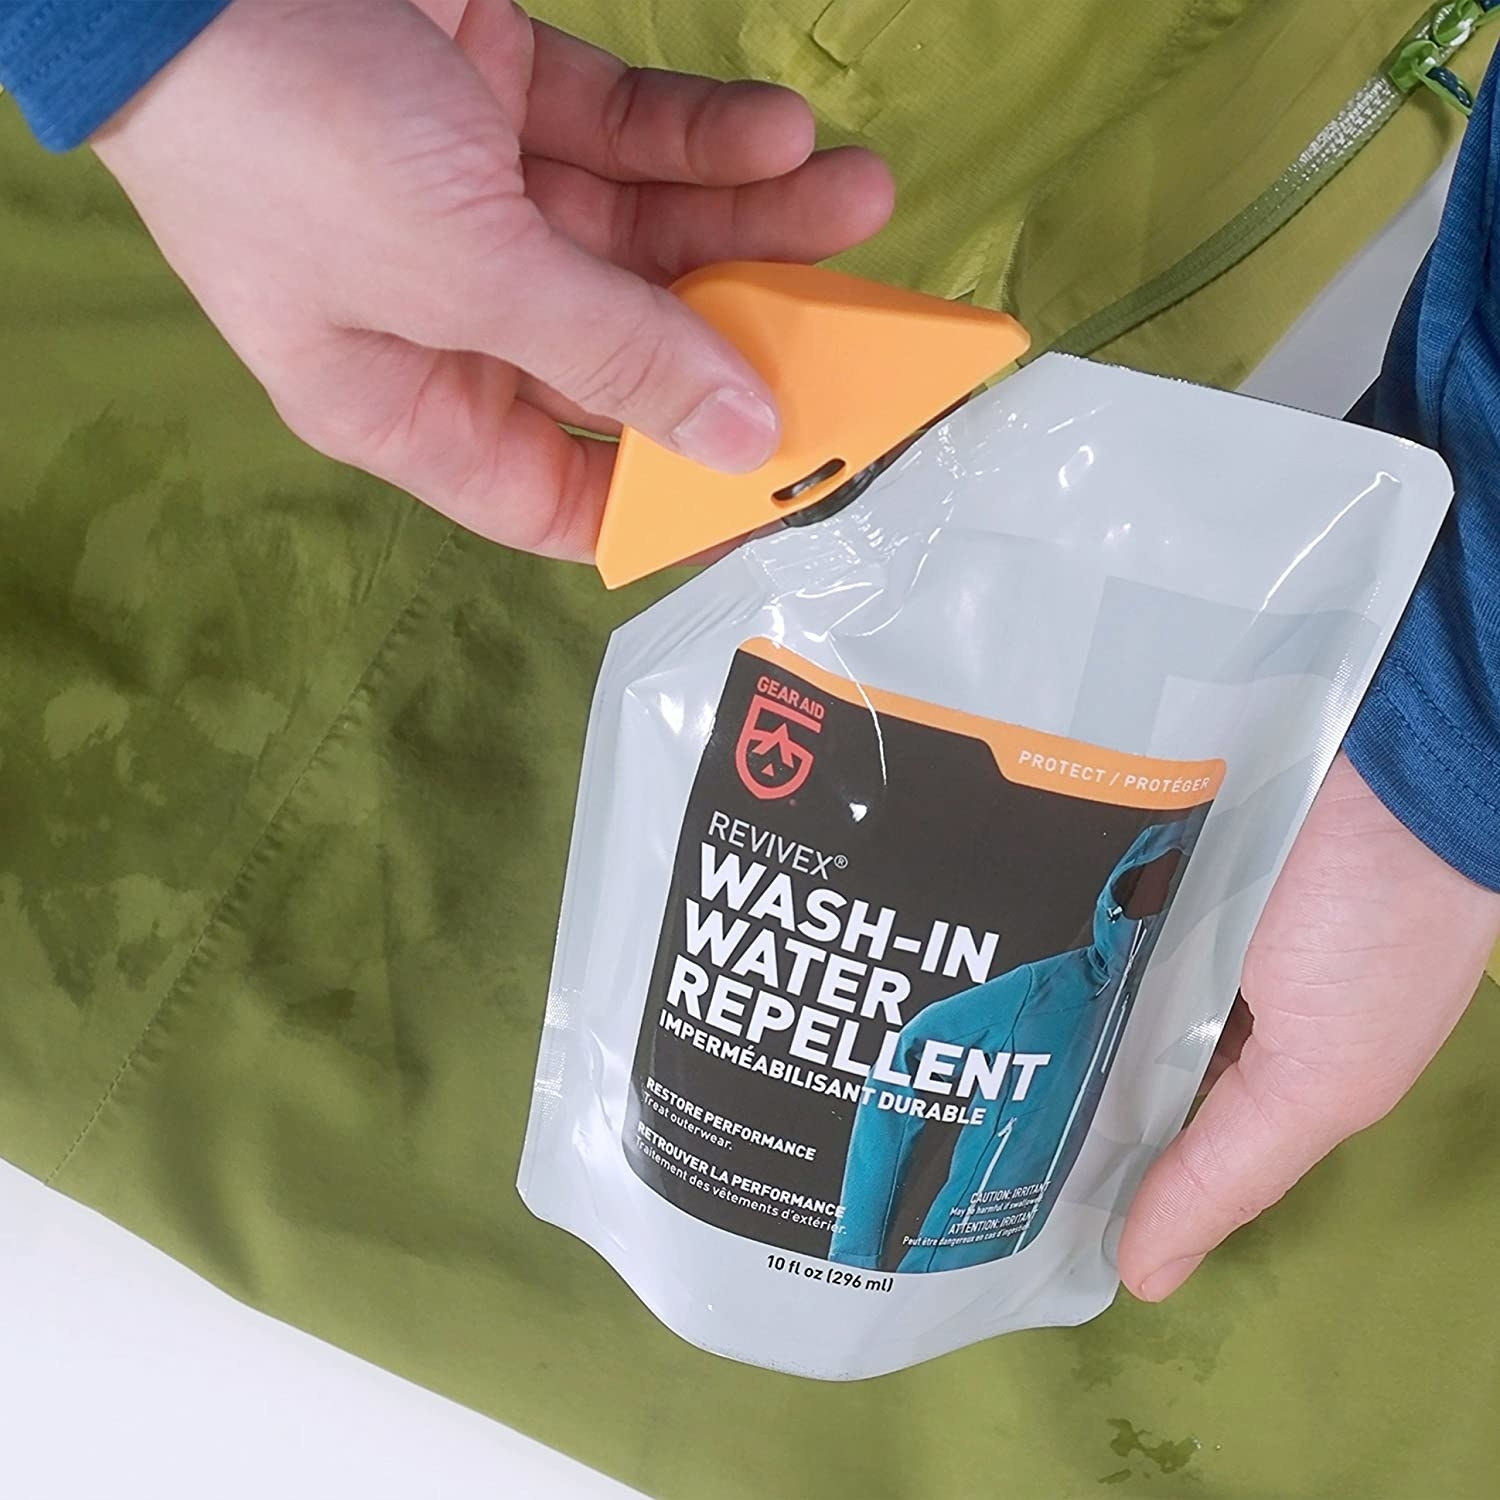 A person opening a packet of wash-in water repellant